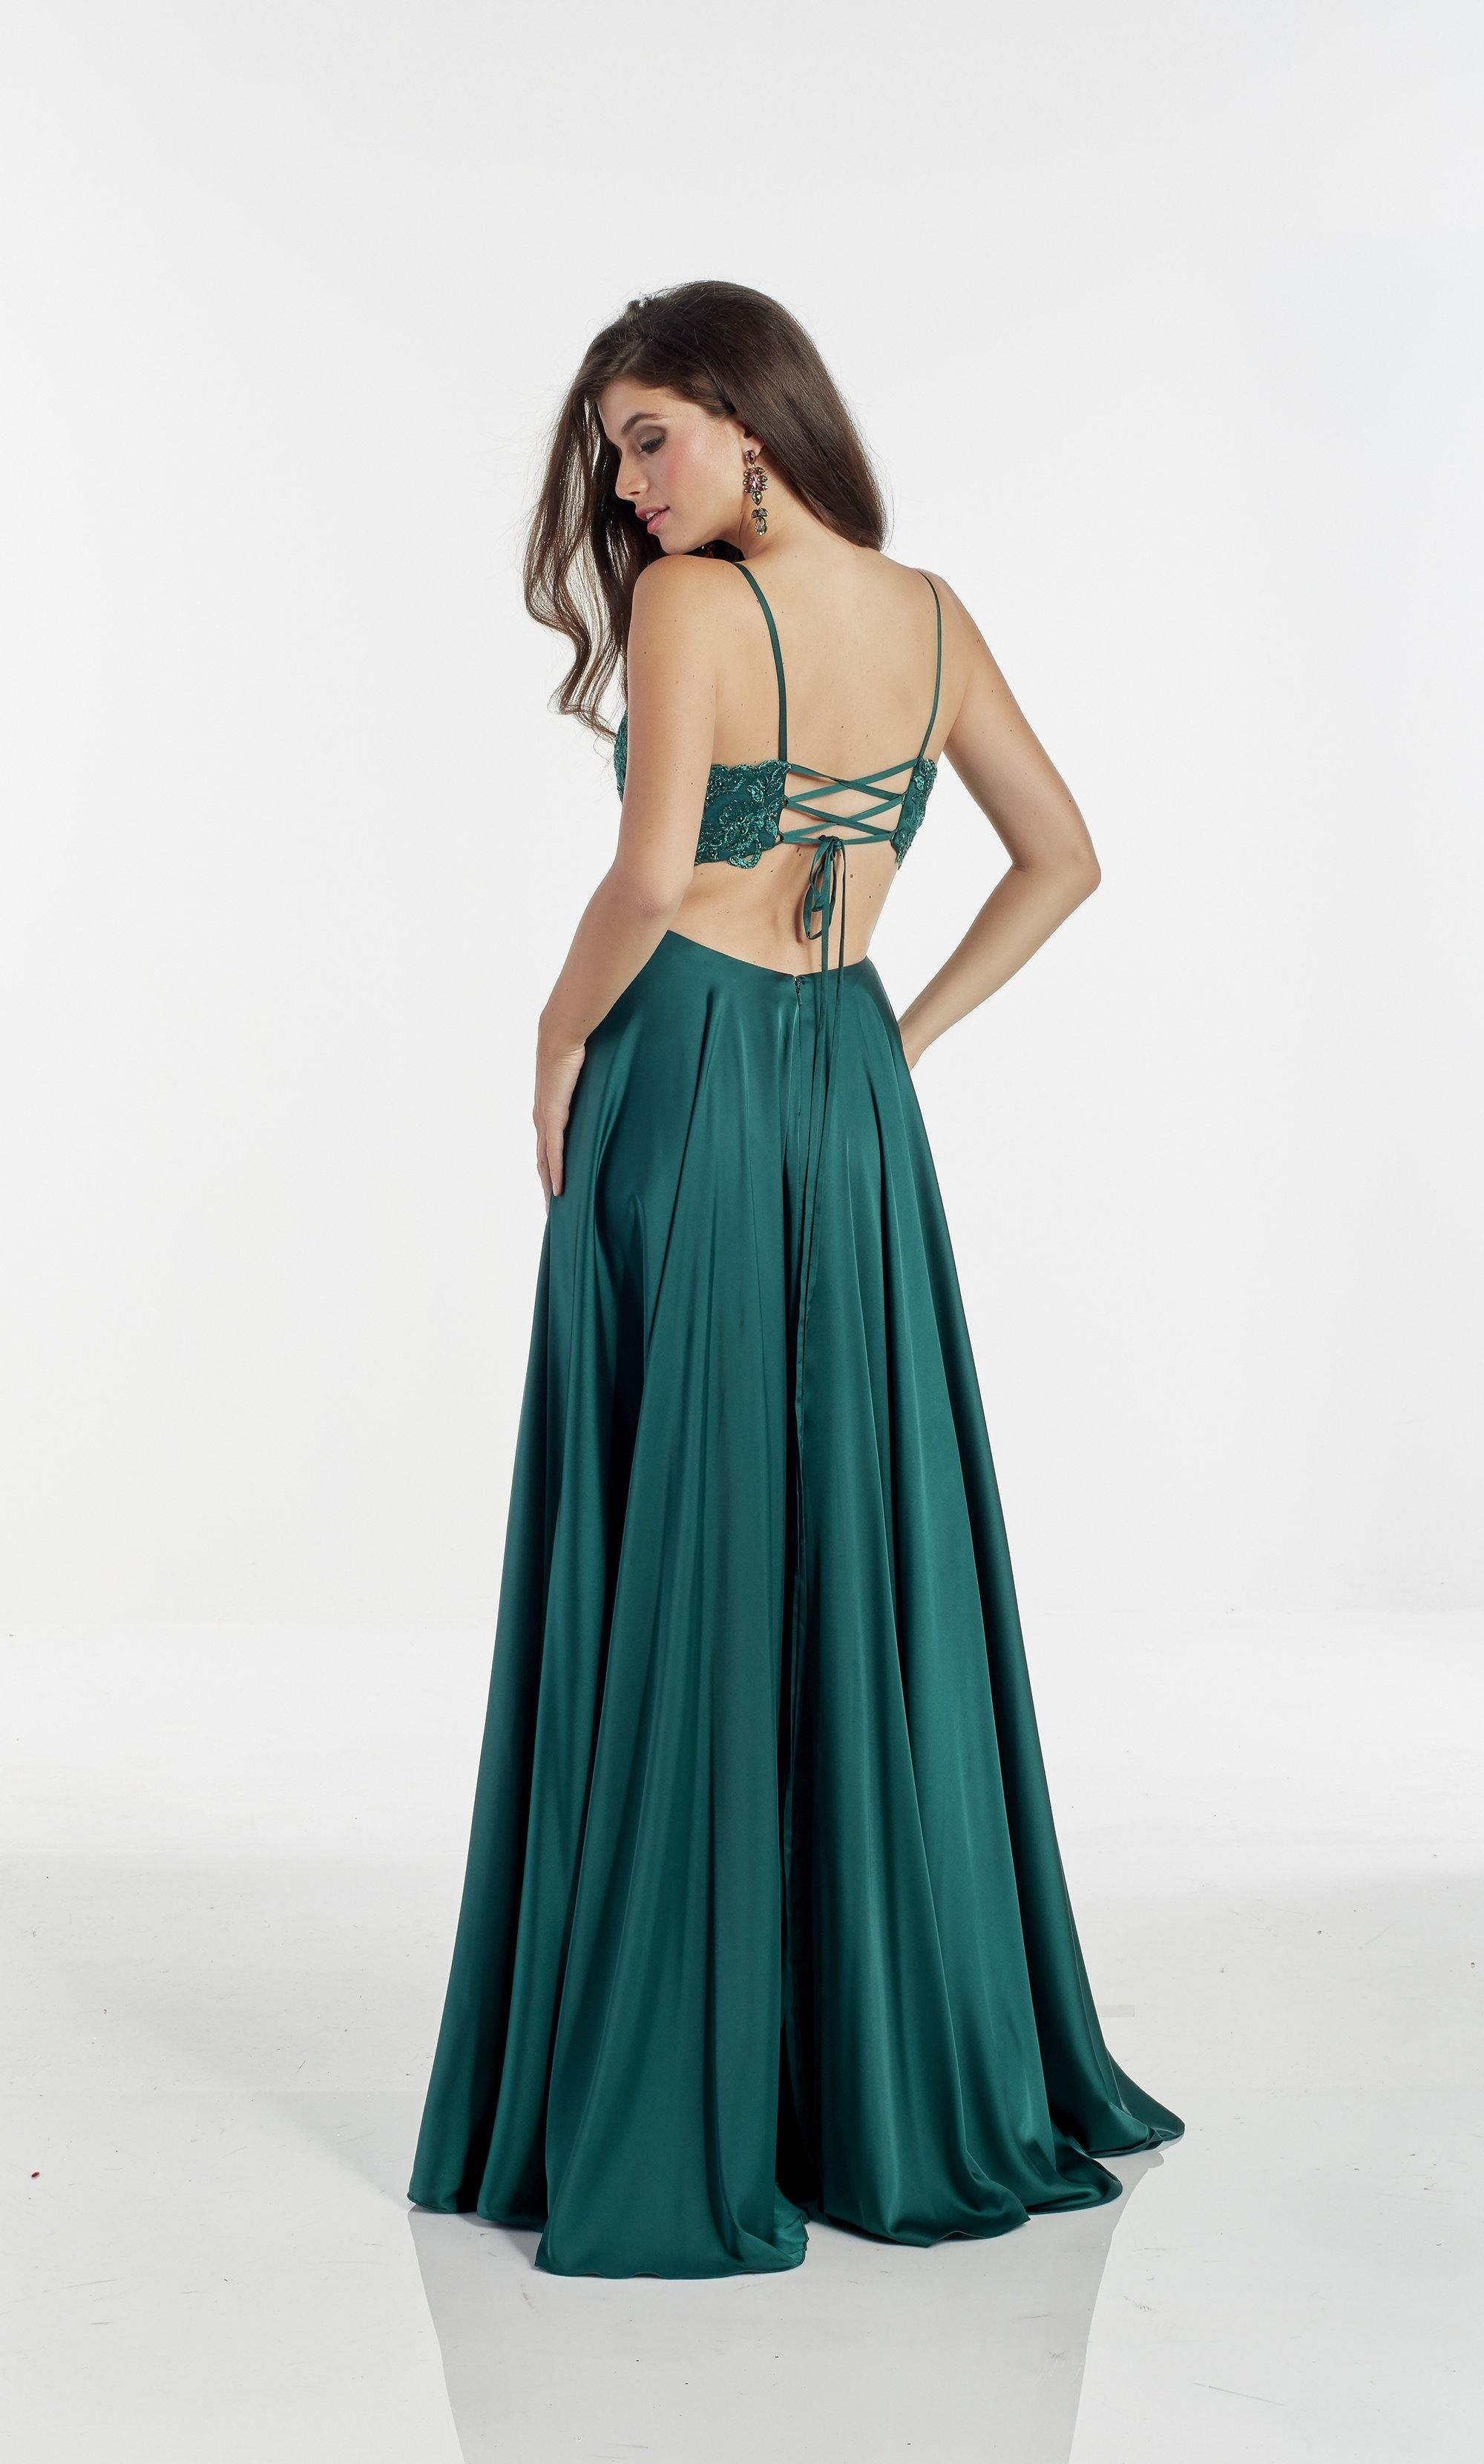 Pine flowy bridesmaid dress with a plunging neckline, lace bodice, and front slit